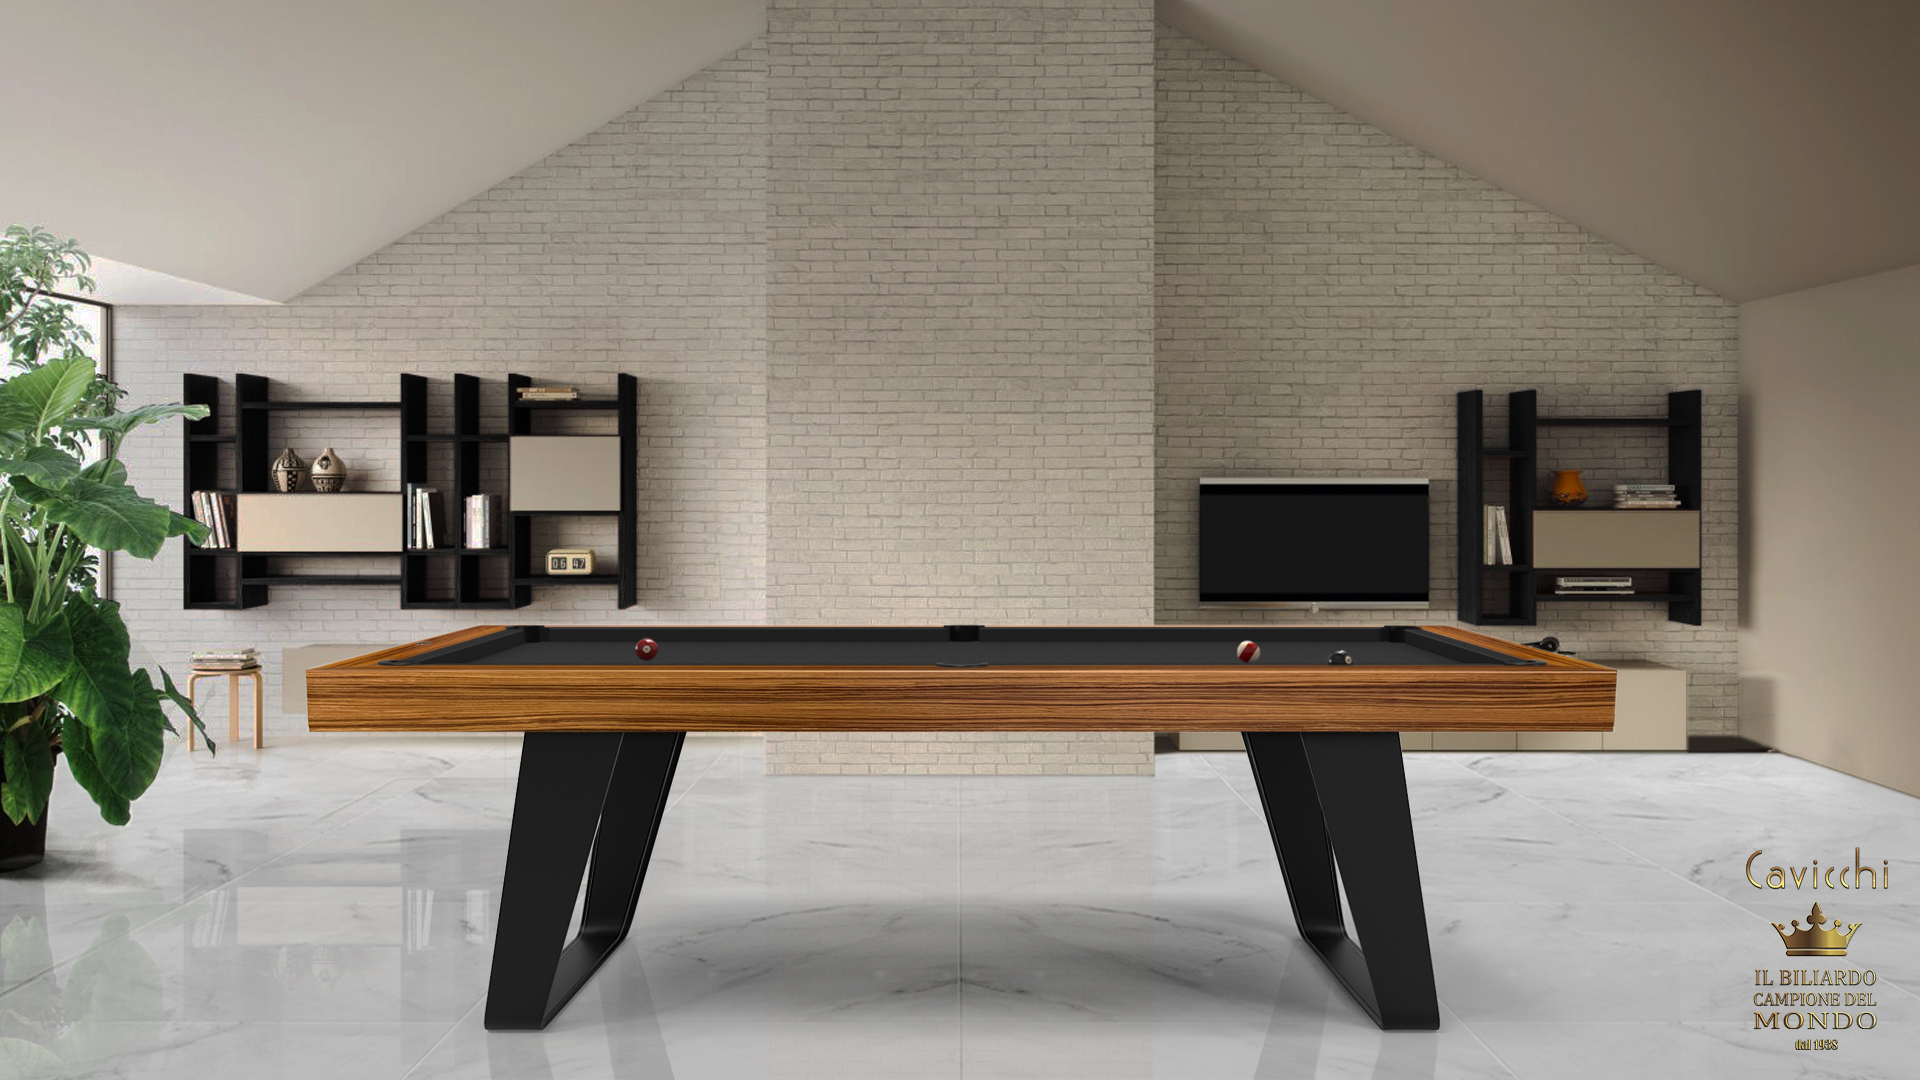 Chimera Pool Table 4